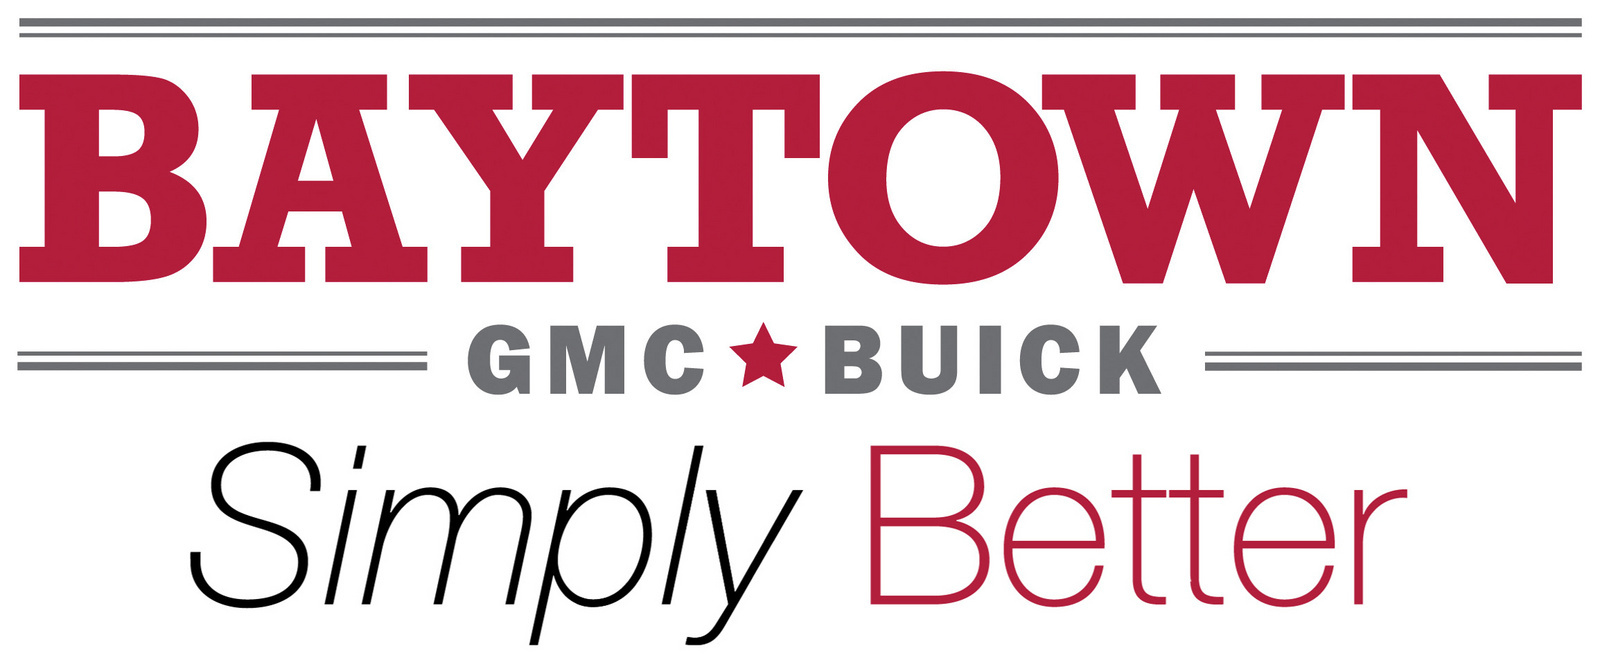 Baytown Gmc Buick Baytown Tx Read Consumer Reviews